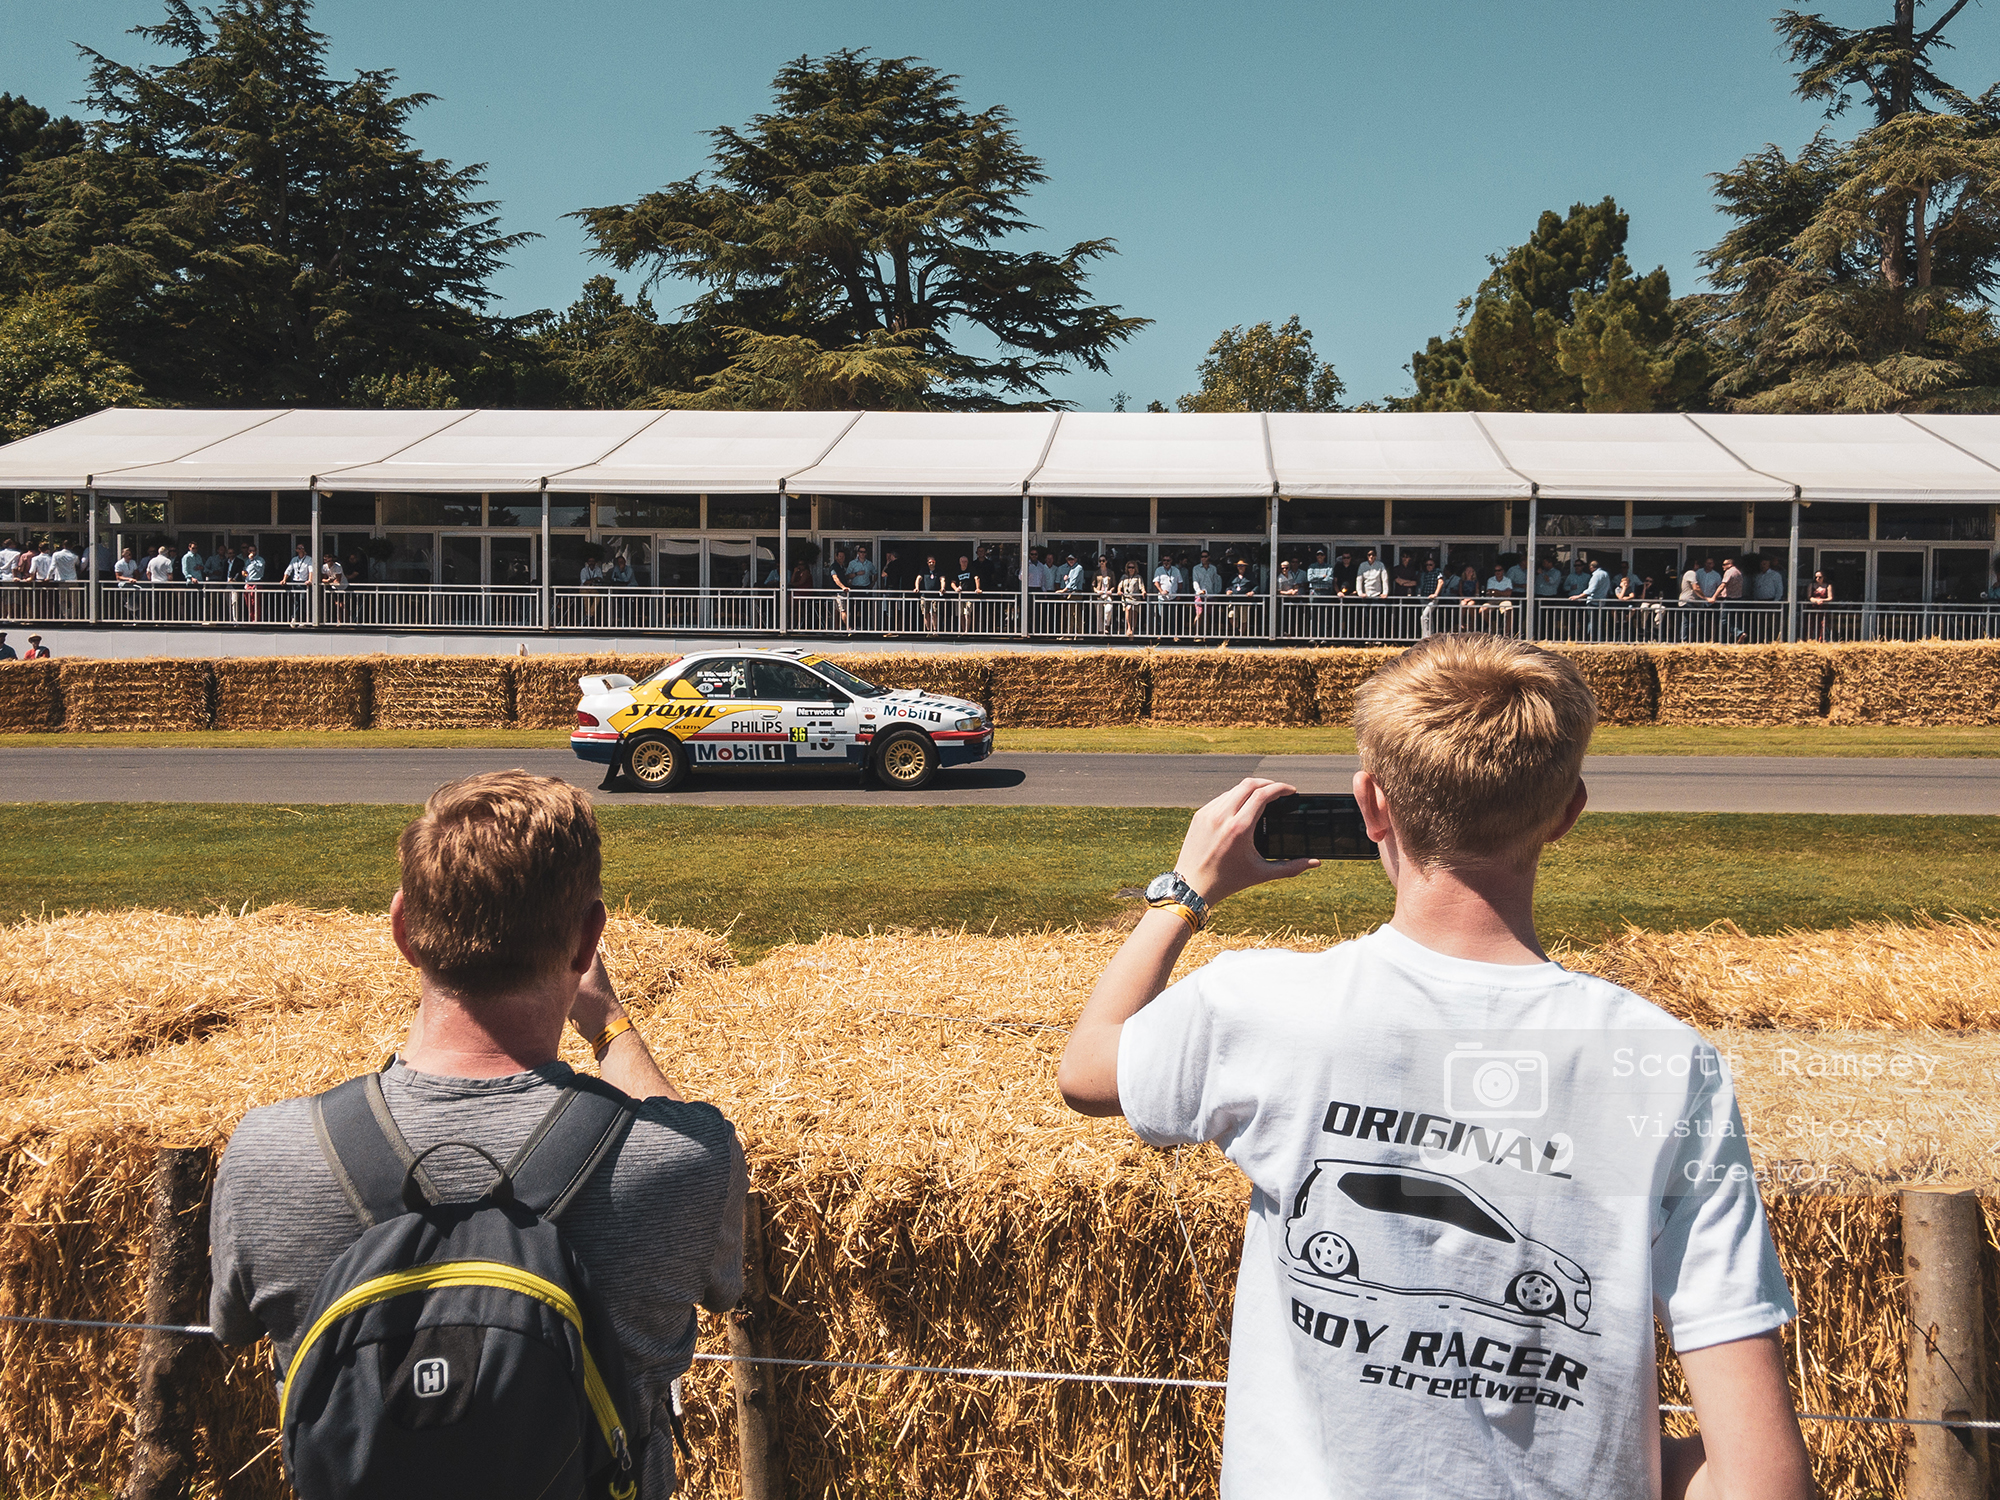 UK Professional iPhone Photographer Scott Ramsey Documents The Goodwood Festival Of Speed. In Photo - Boy Racer's photograph a car at the event in Chichester, West Sussex. © Scott Ramsey - Photographer & Visual Content Creator.